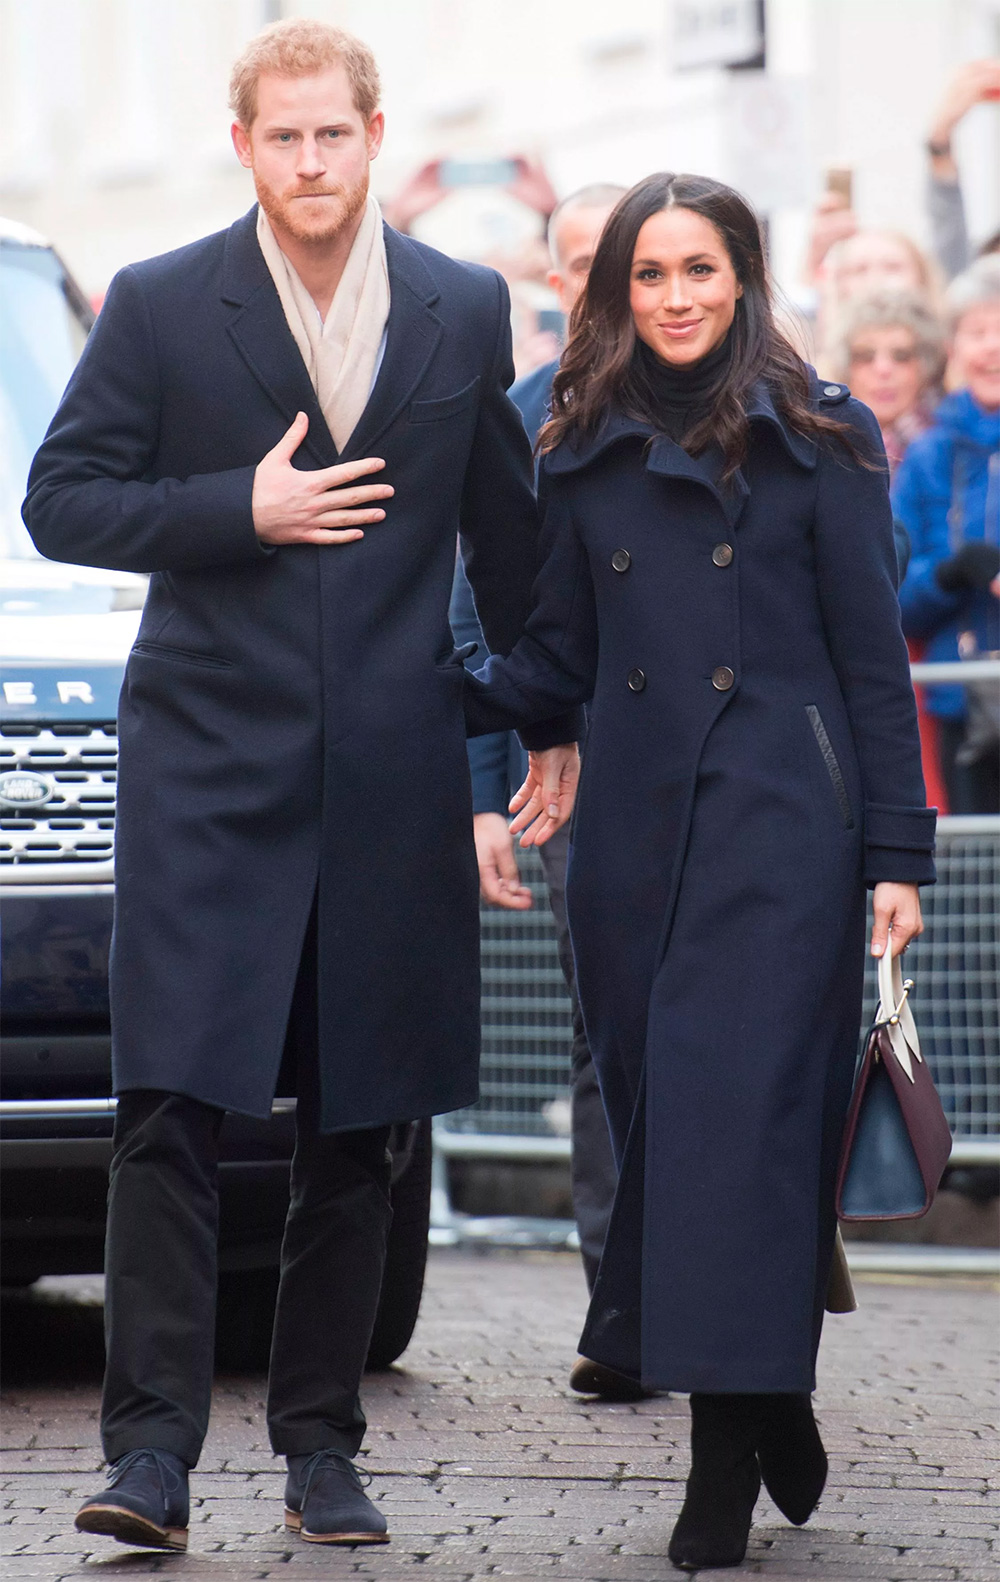 Meghan Markle during her first official royal engagement walkabout with Prince Harry for World AIDS Day in Nottingham, England, on December 1, 2017.